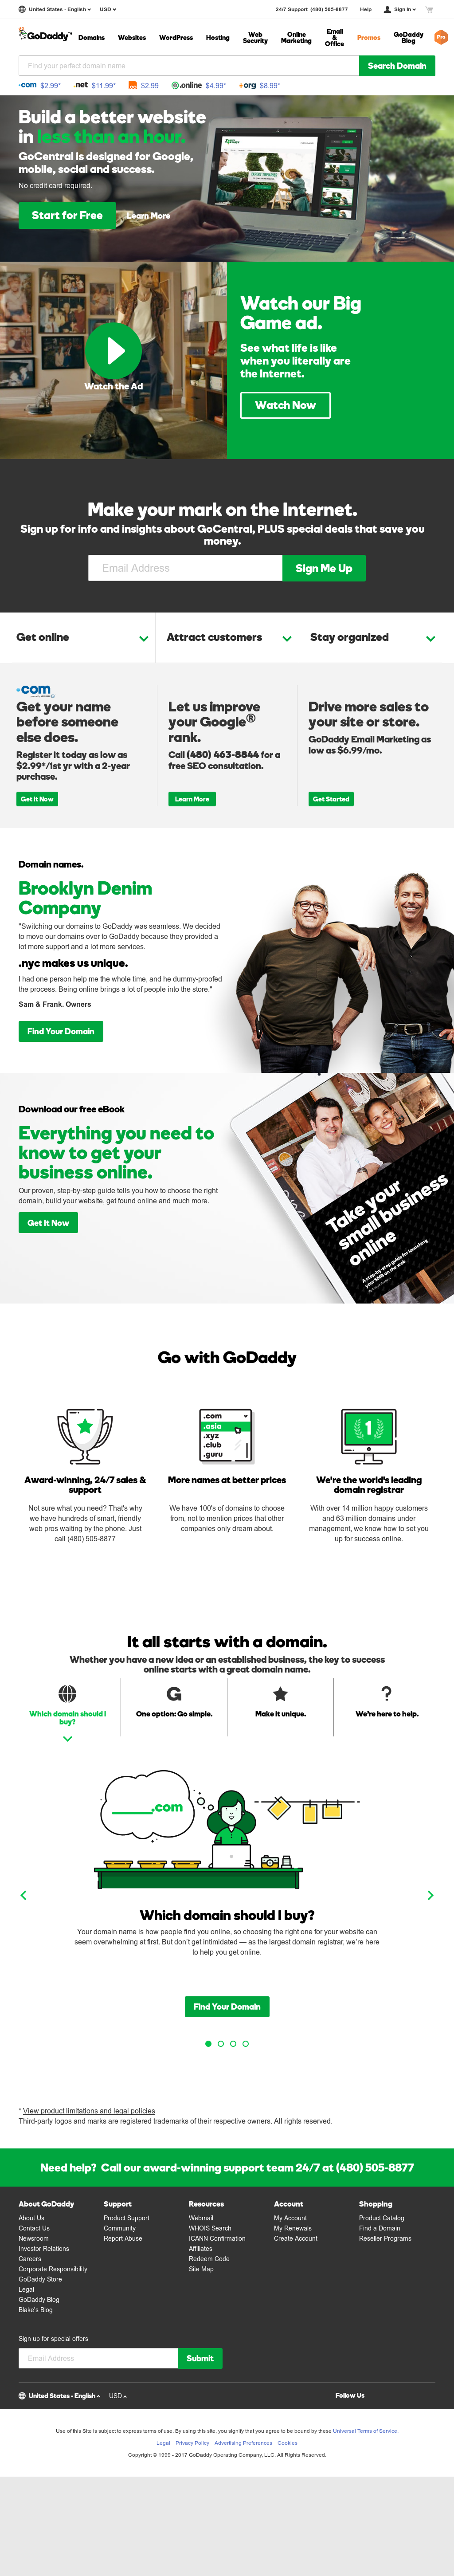 GoDaddy Competitors, Revenue and Employees - Owler Company Profile